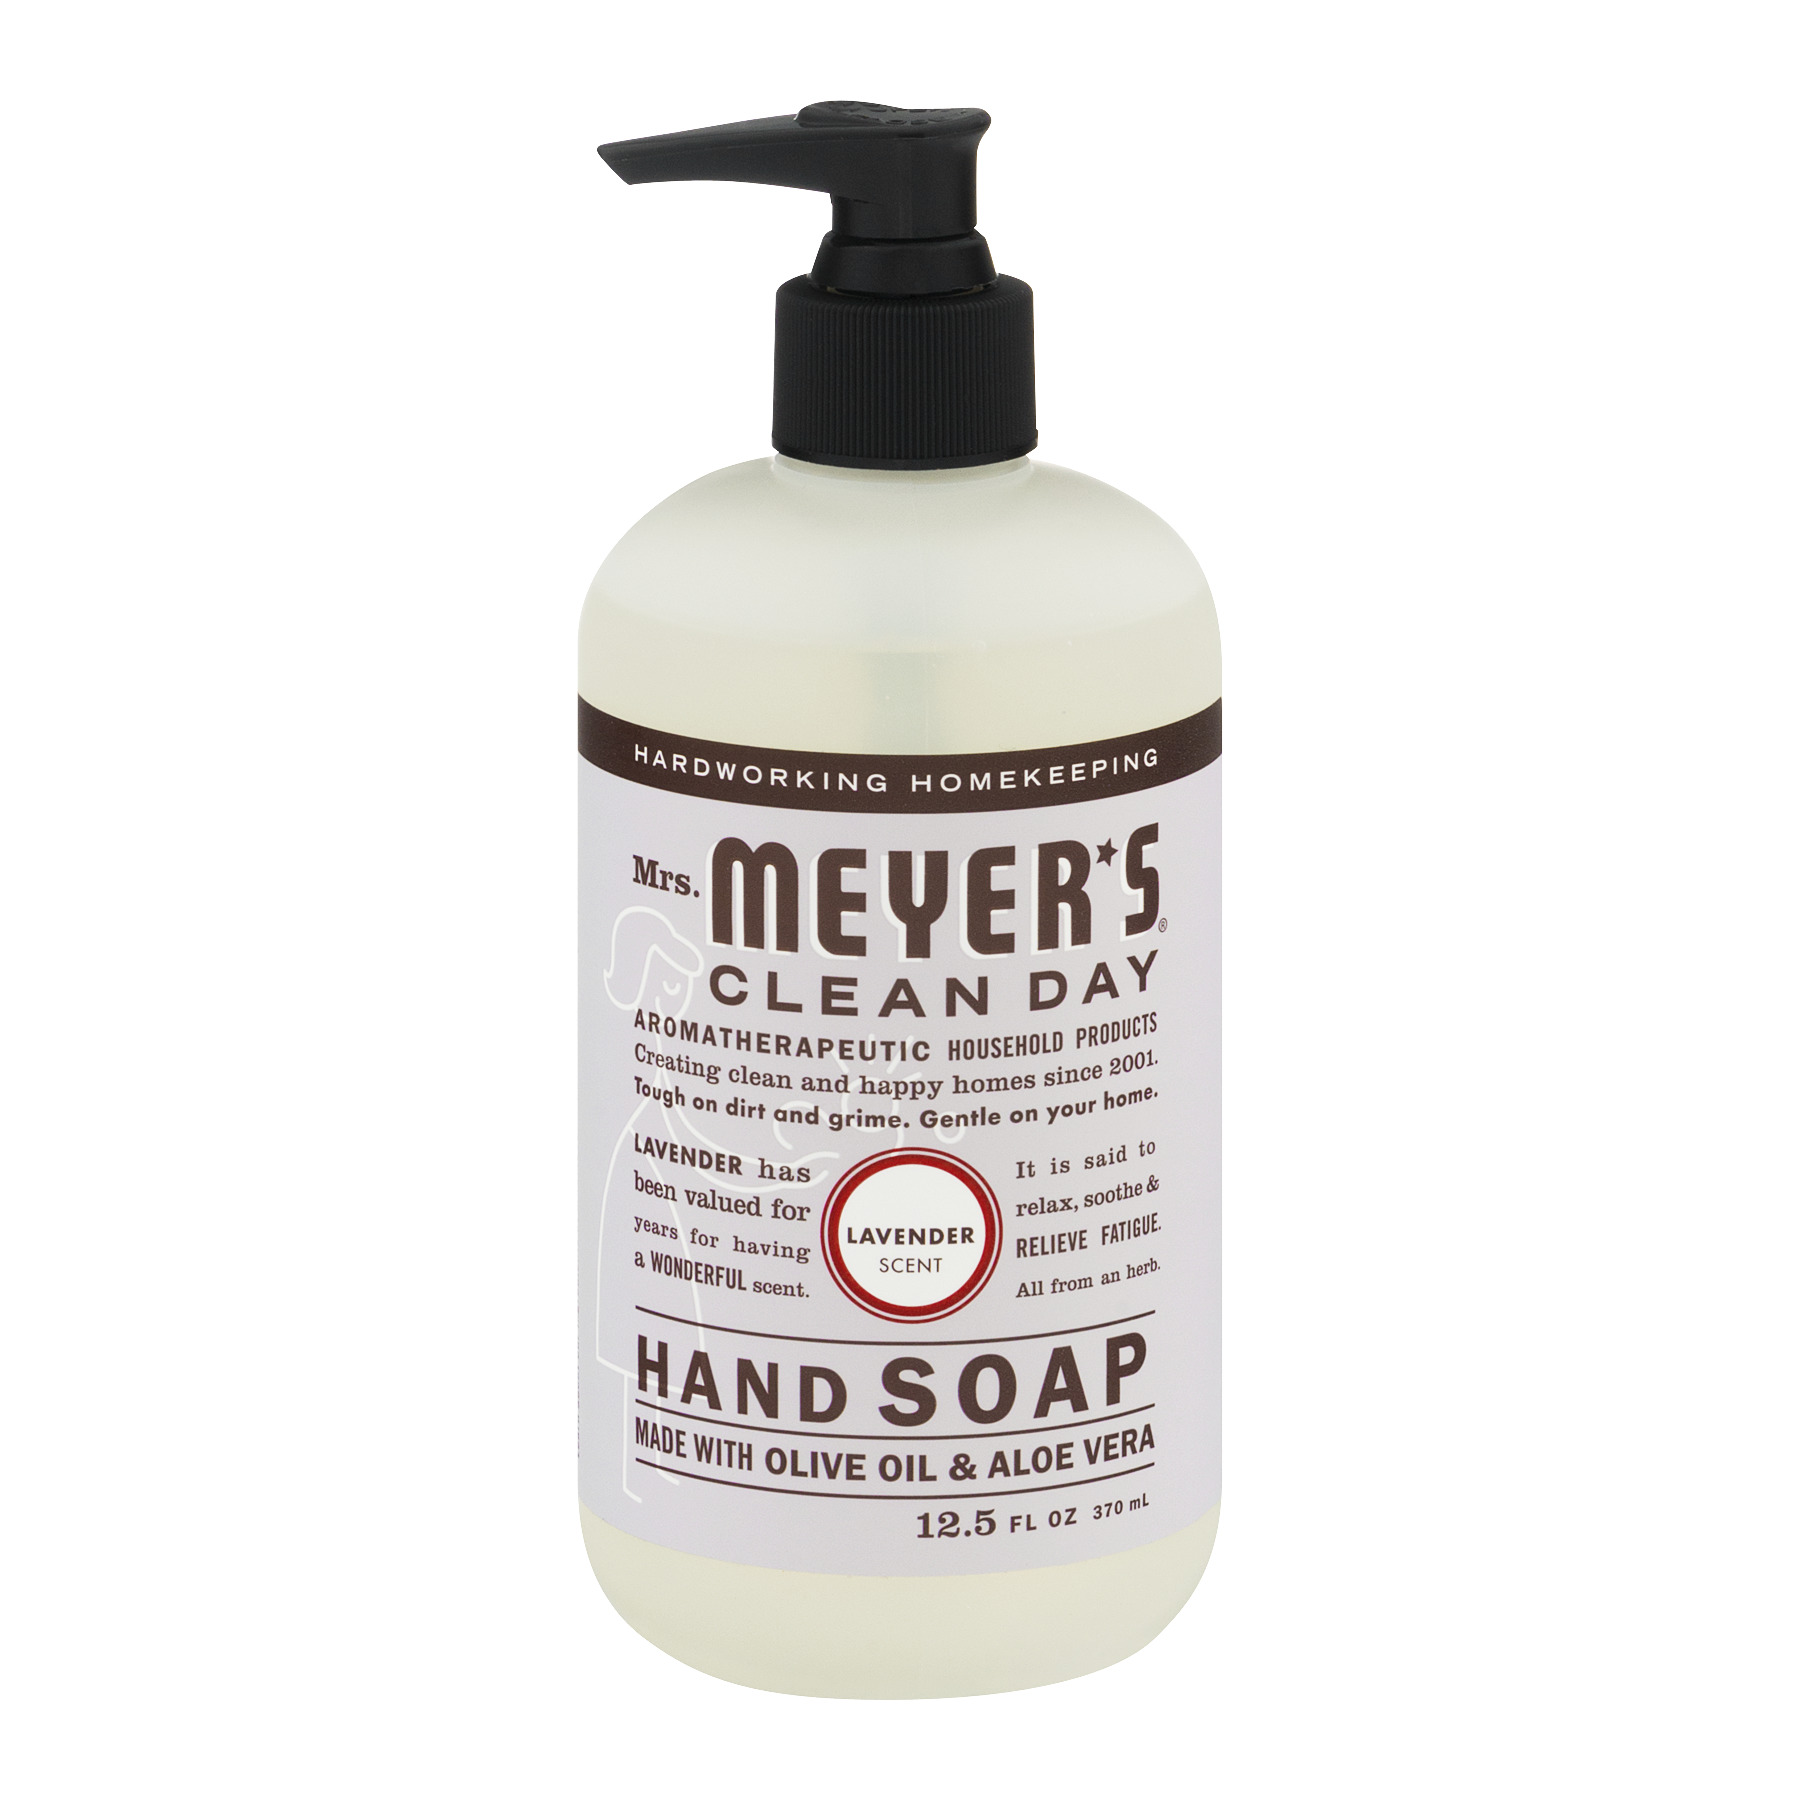 Mrs. Meyer's Clean Day Liquid Hand Soap, Lavender, 12.5 Oz